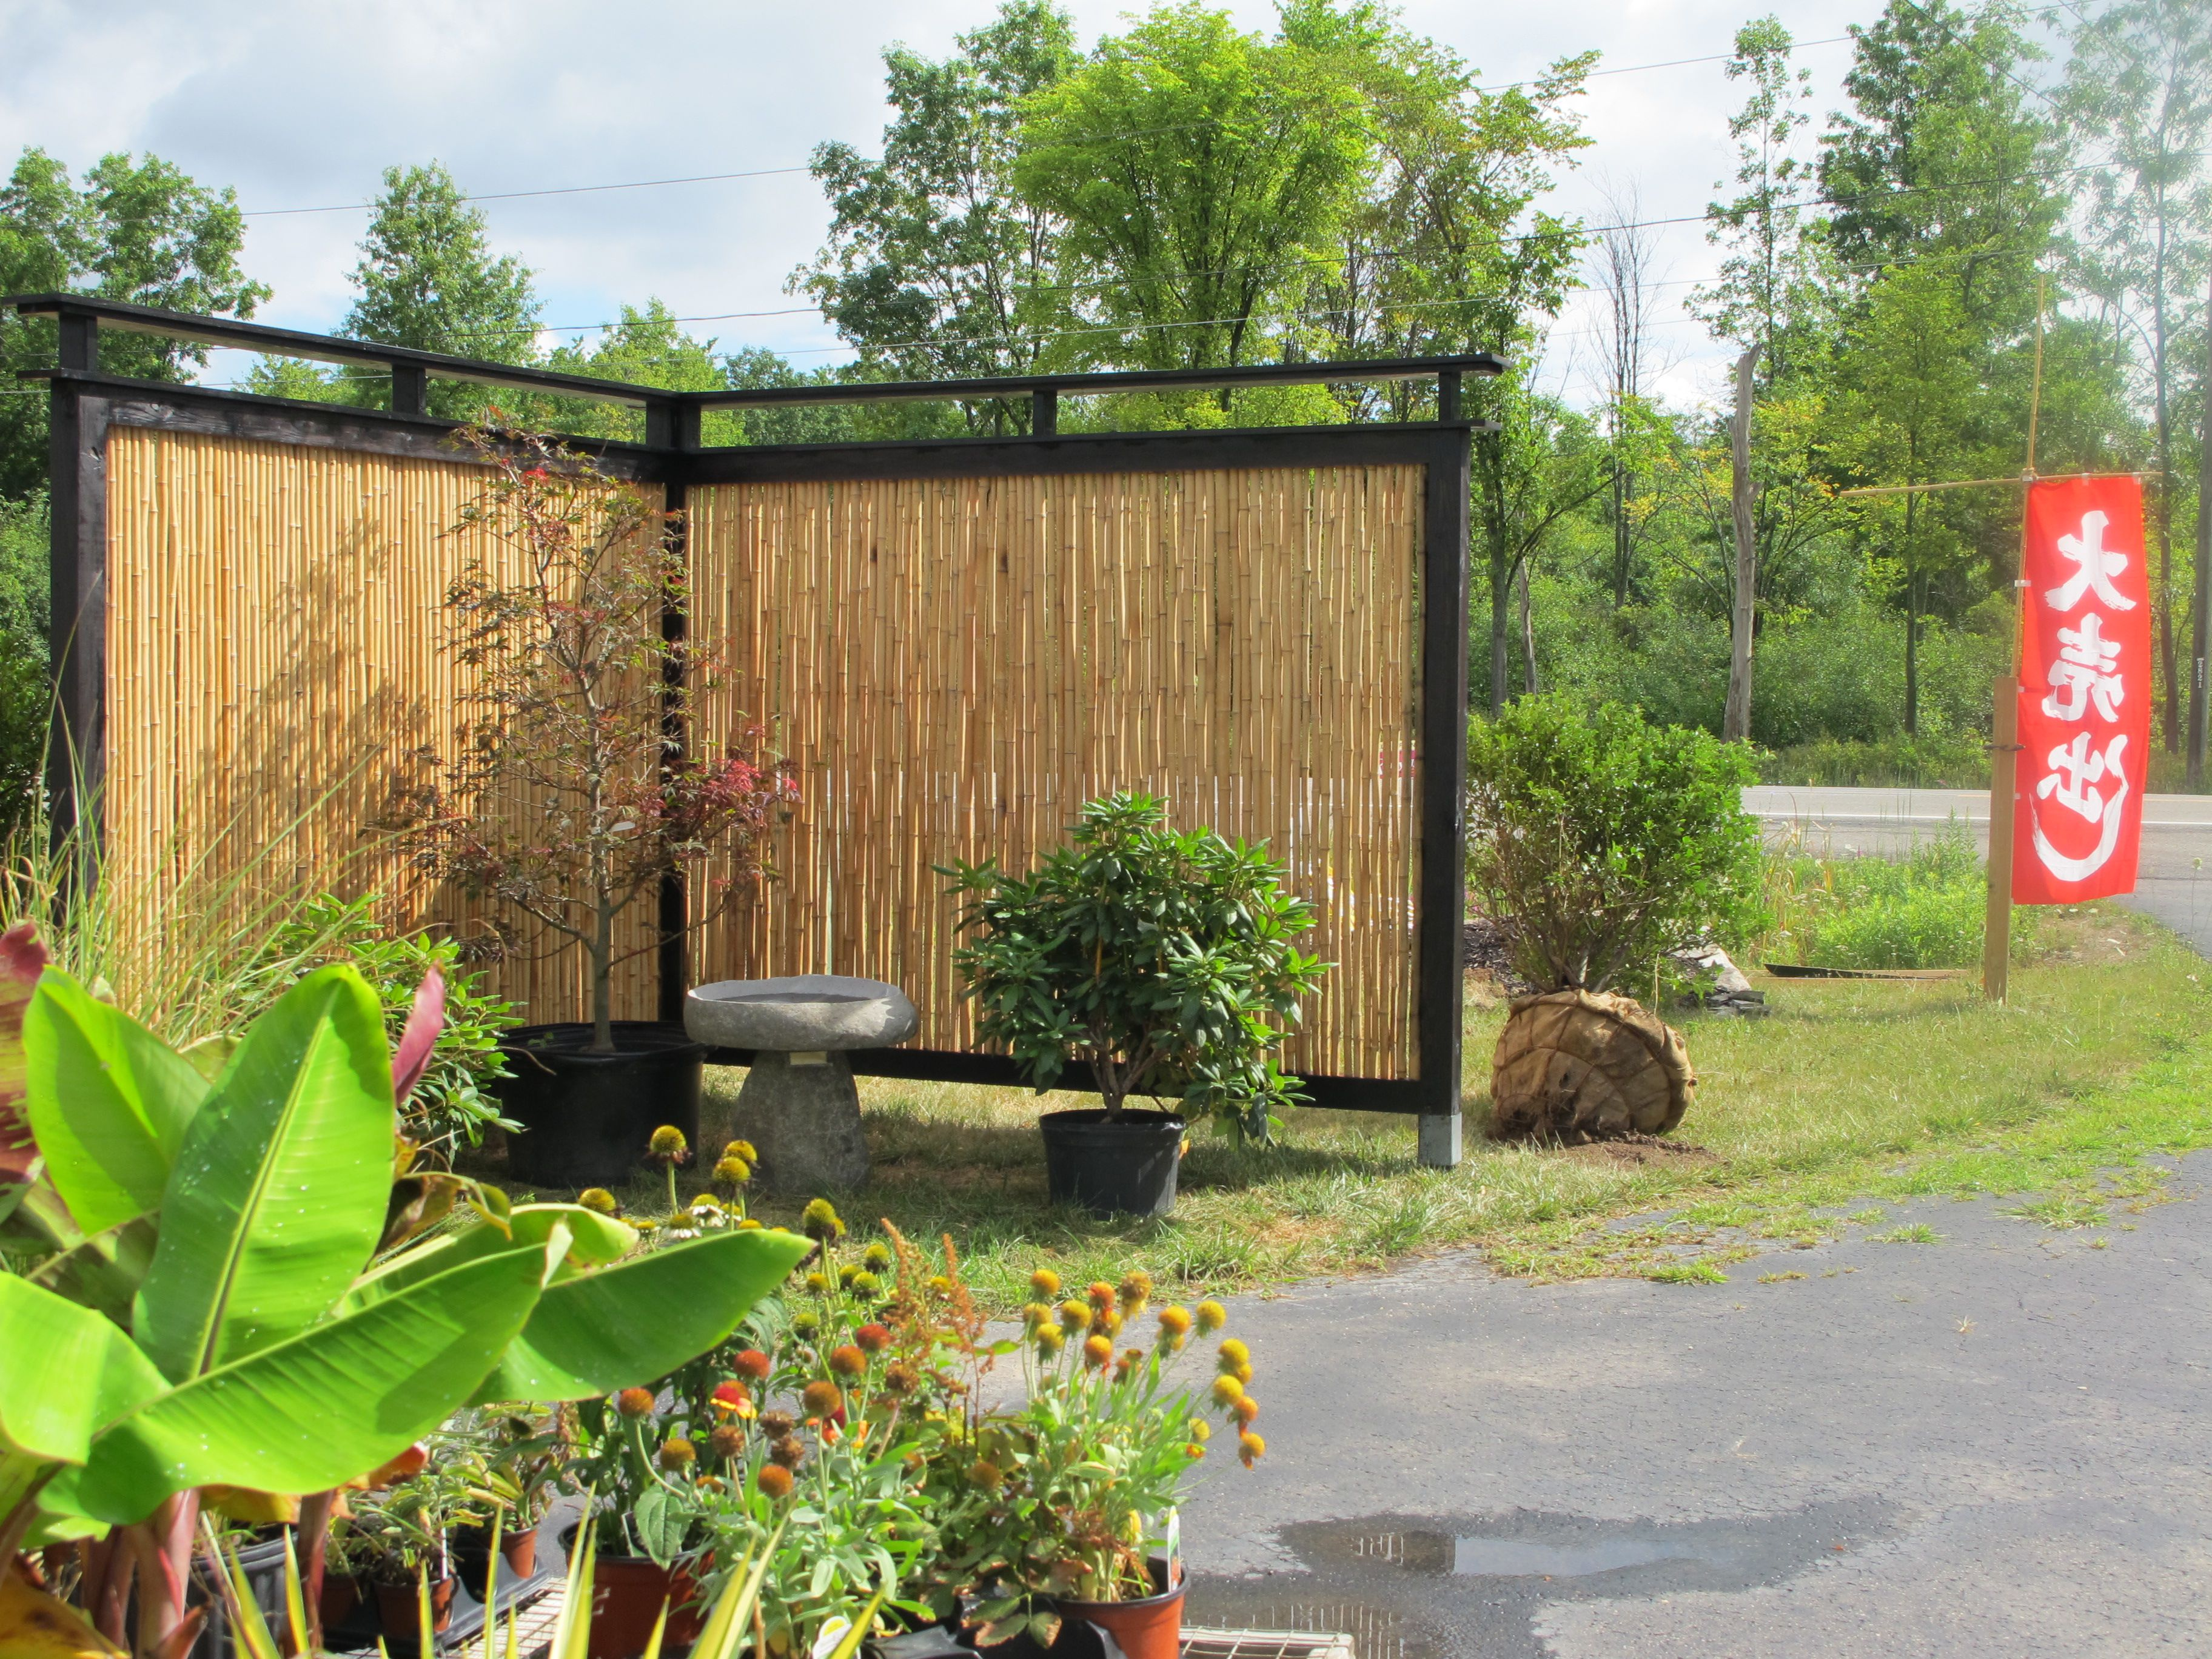 Uncategorized Unique Privacy Fence unique privacy fence ideas decorative modern design bamboo designs 3648x2736